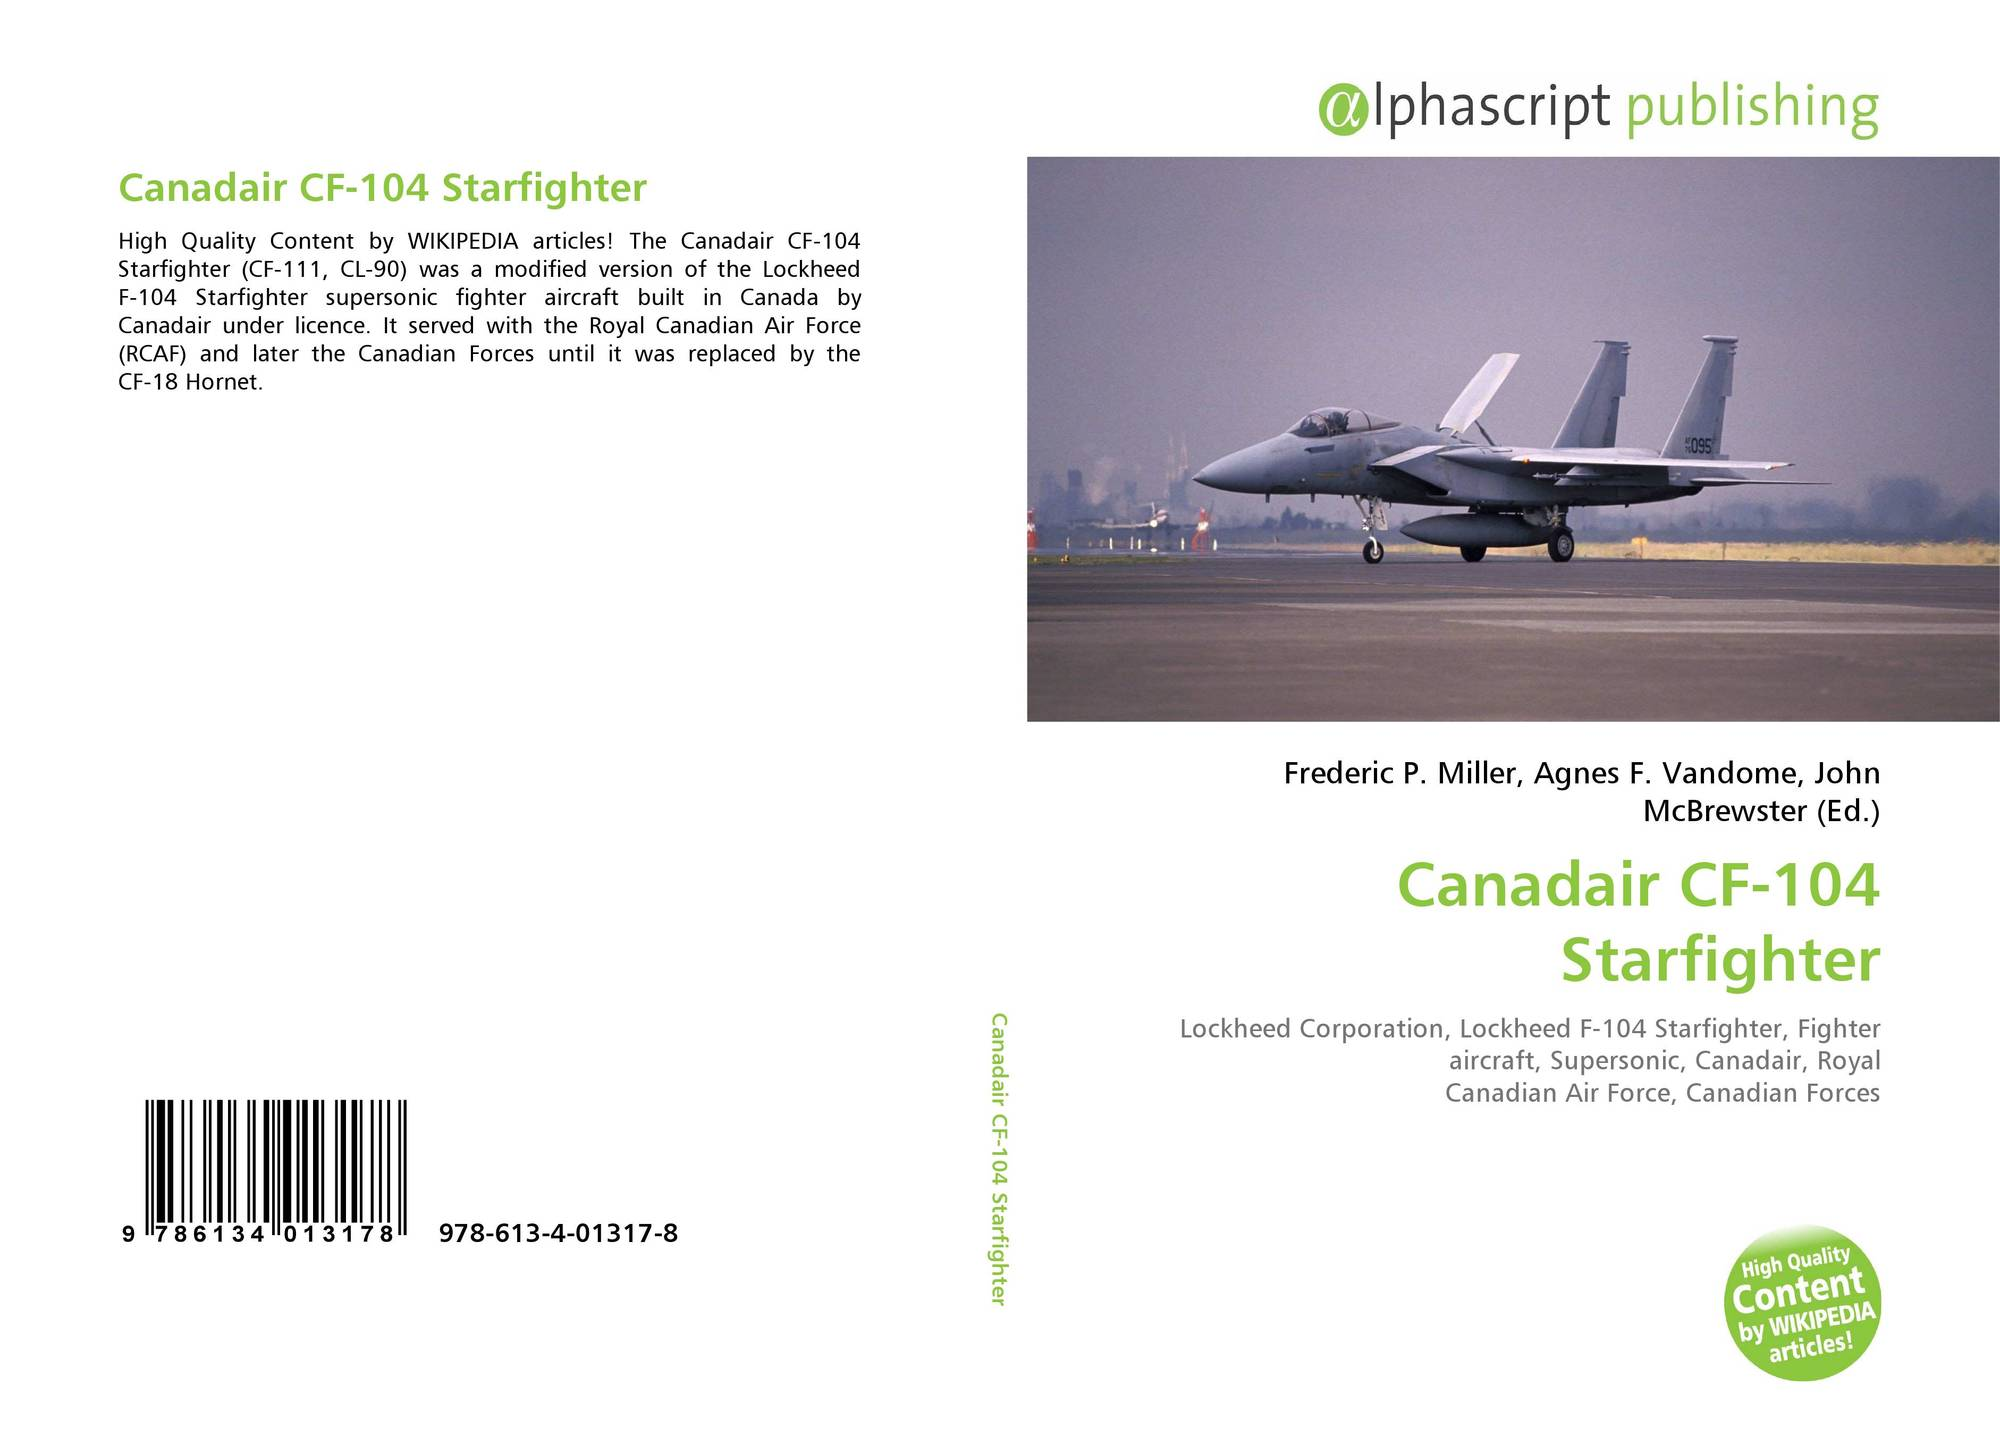 Canadair Aircraft Wiring Diagram Schematic Diagrams Theremindiagram Search Results For